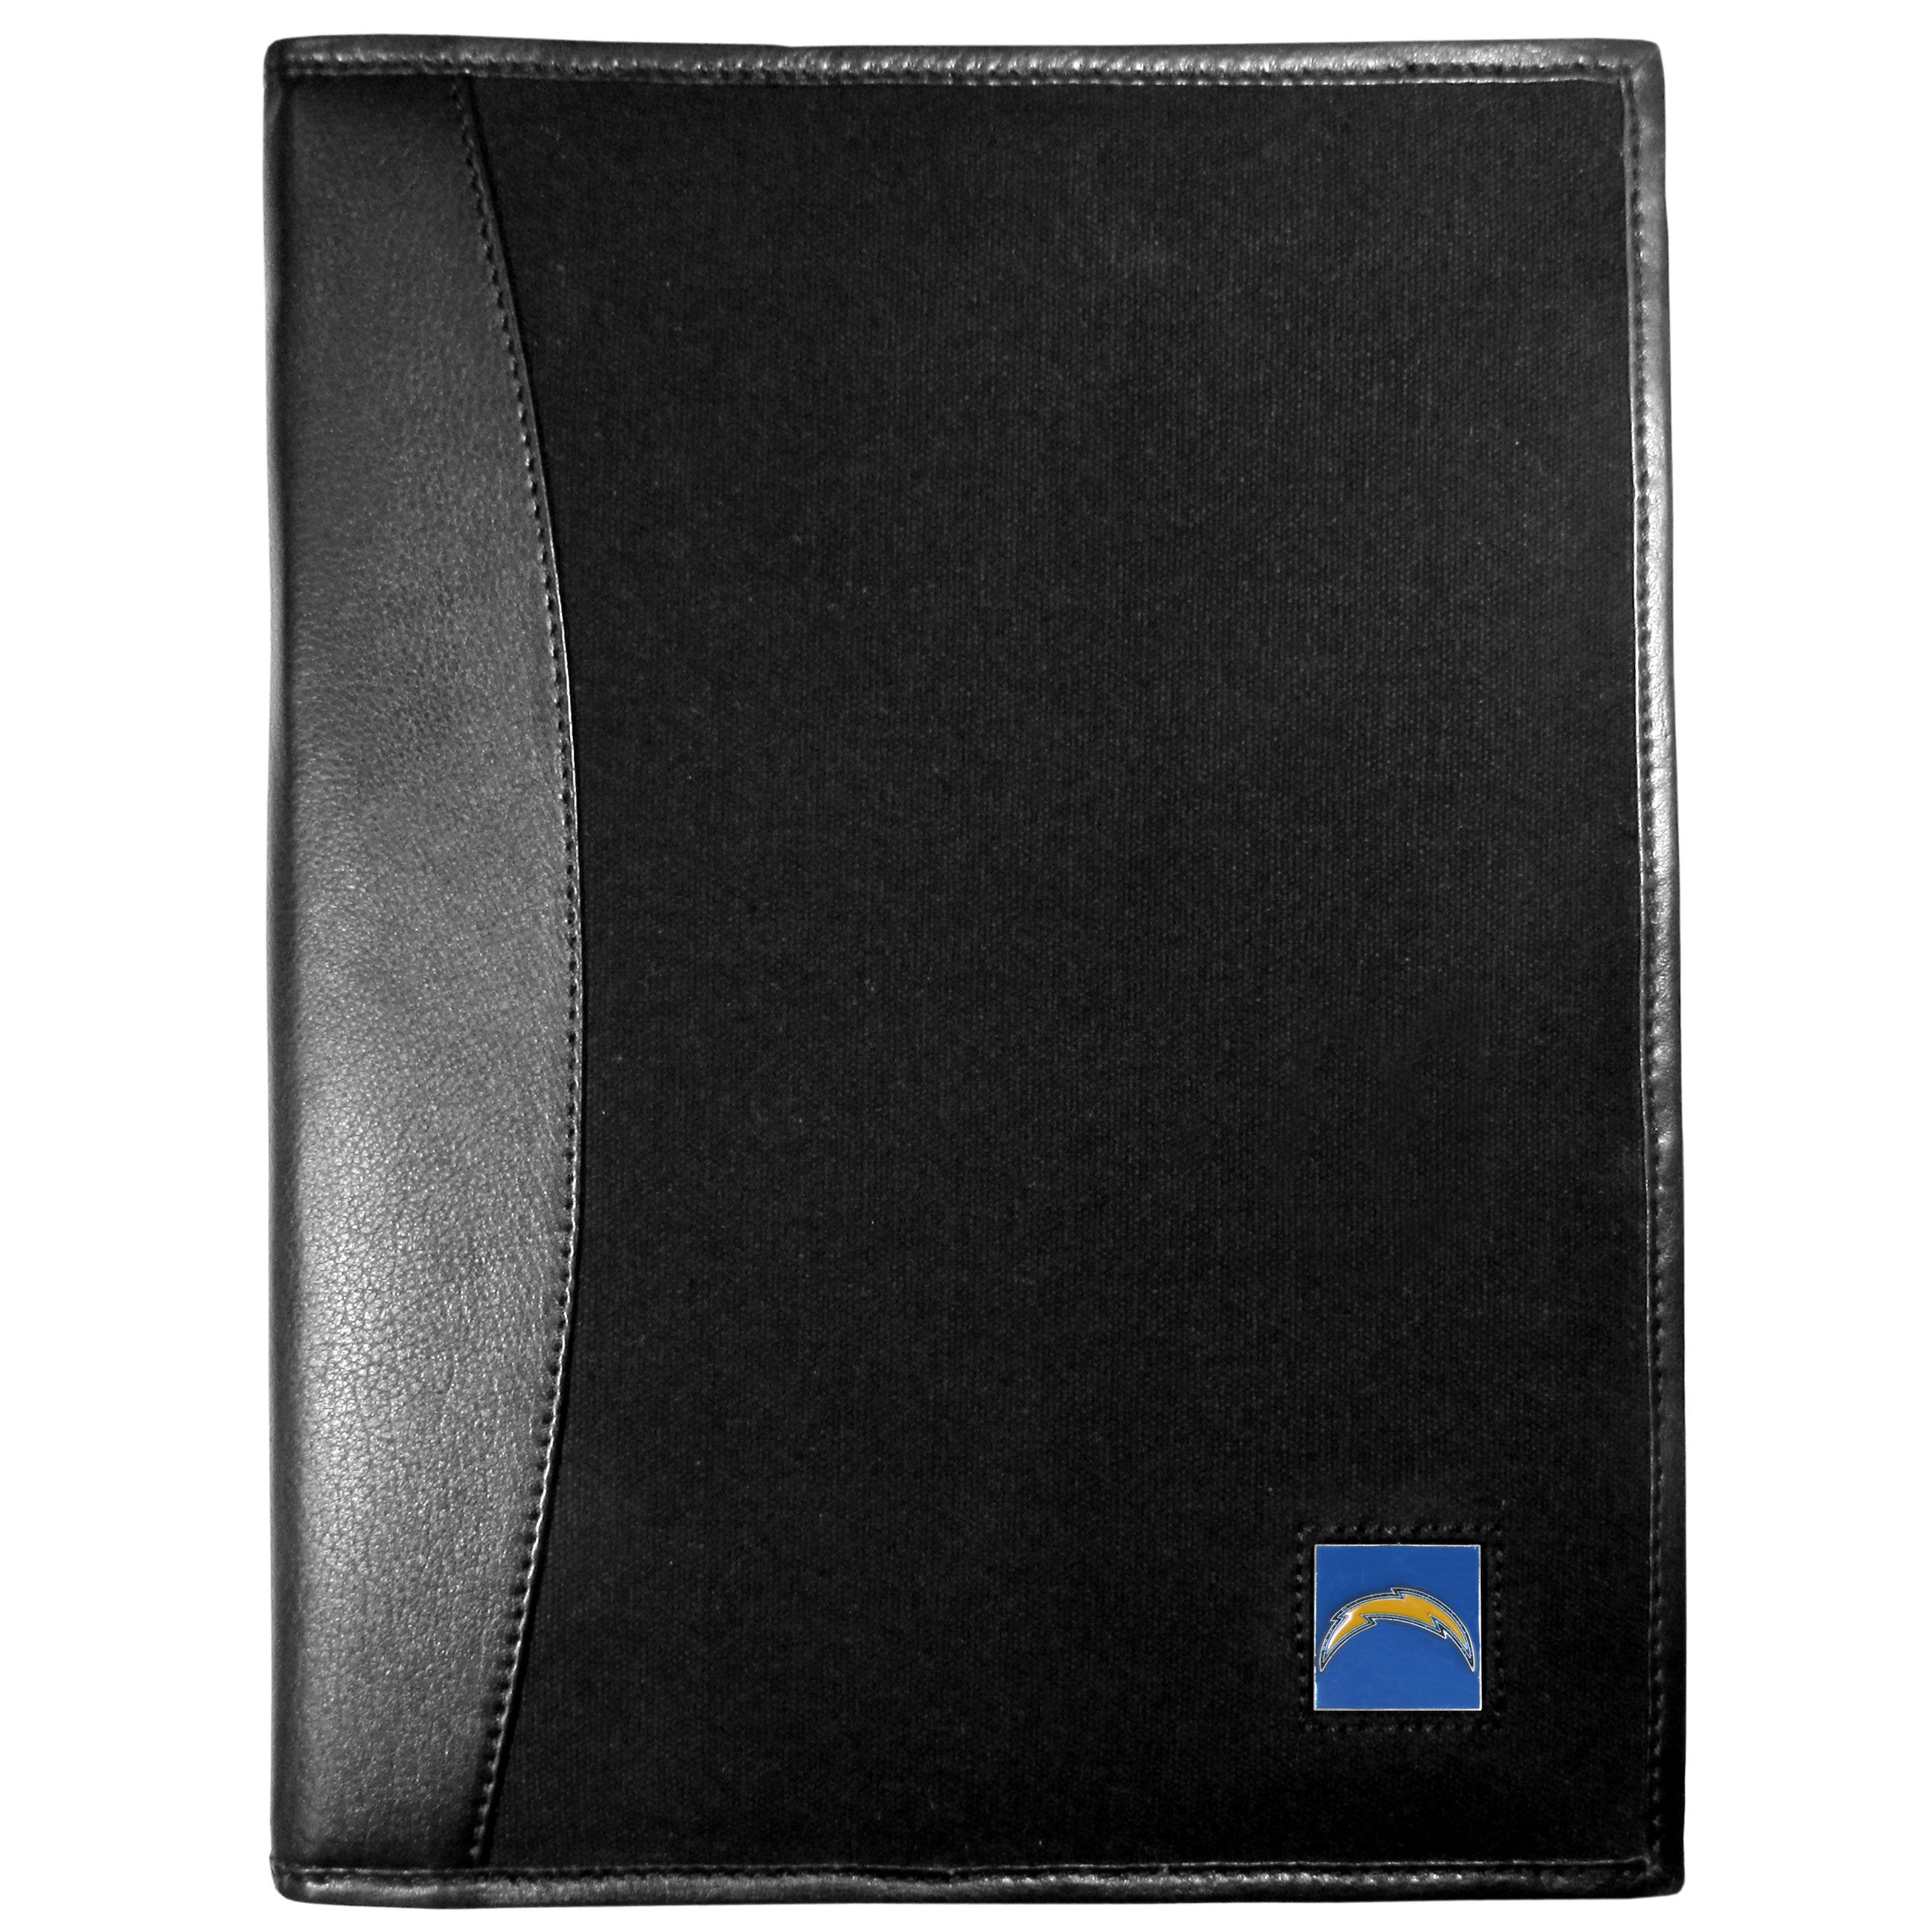 Los Angeles Chargers Leather and Canvas Padfolio - Our leather and canvas padfolio perfectly blends form and function. The attractive portfolio is bound in fine grain leather with an attractive canvas finish and the interior is a soft nylon. This high quality business accessory also features a fully cast metal Los Angeles Chargers emblem that is subtly set in the corner of the organizer. It is packed with features like 6 card slots for badges, business cards, hotel keys or credit cards and ID with a large pocket for loose papers and a writing tablet slot making it a must-have for the professional on the go.